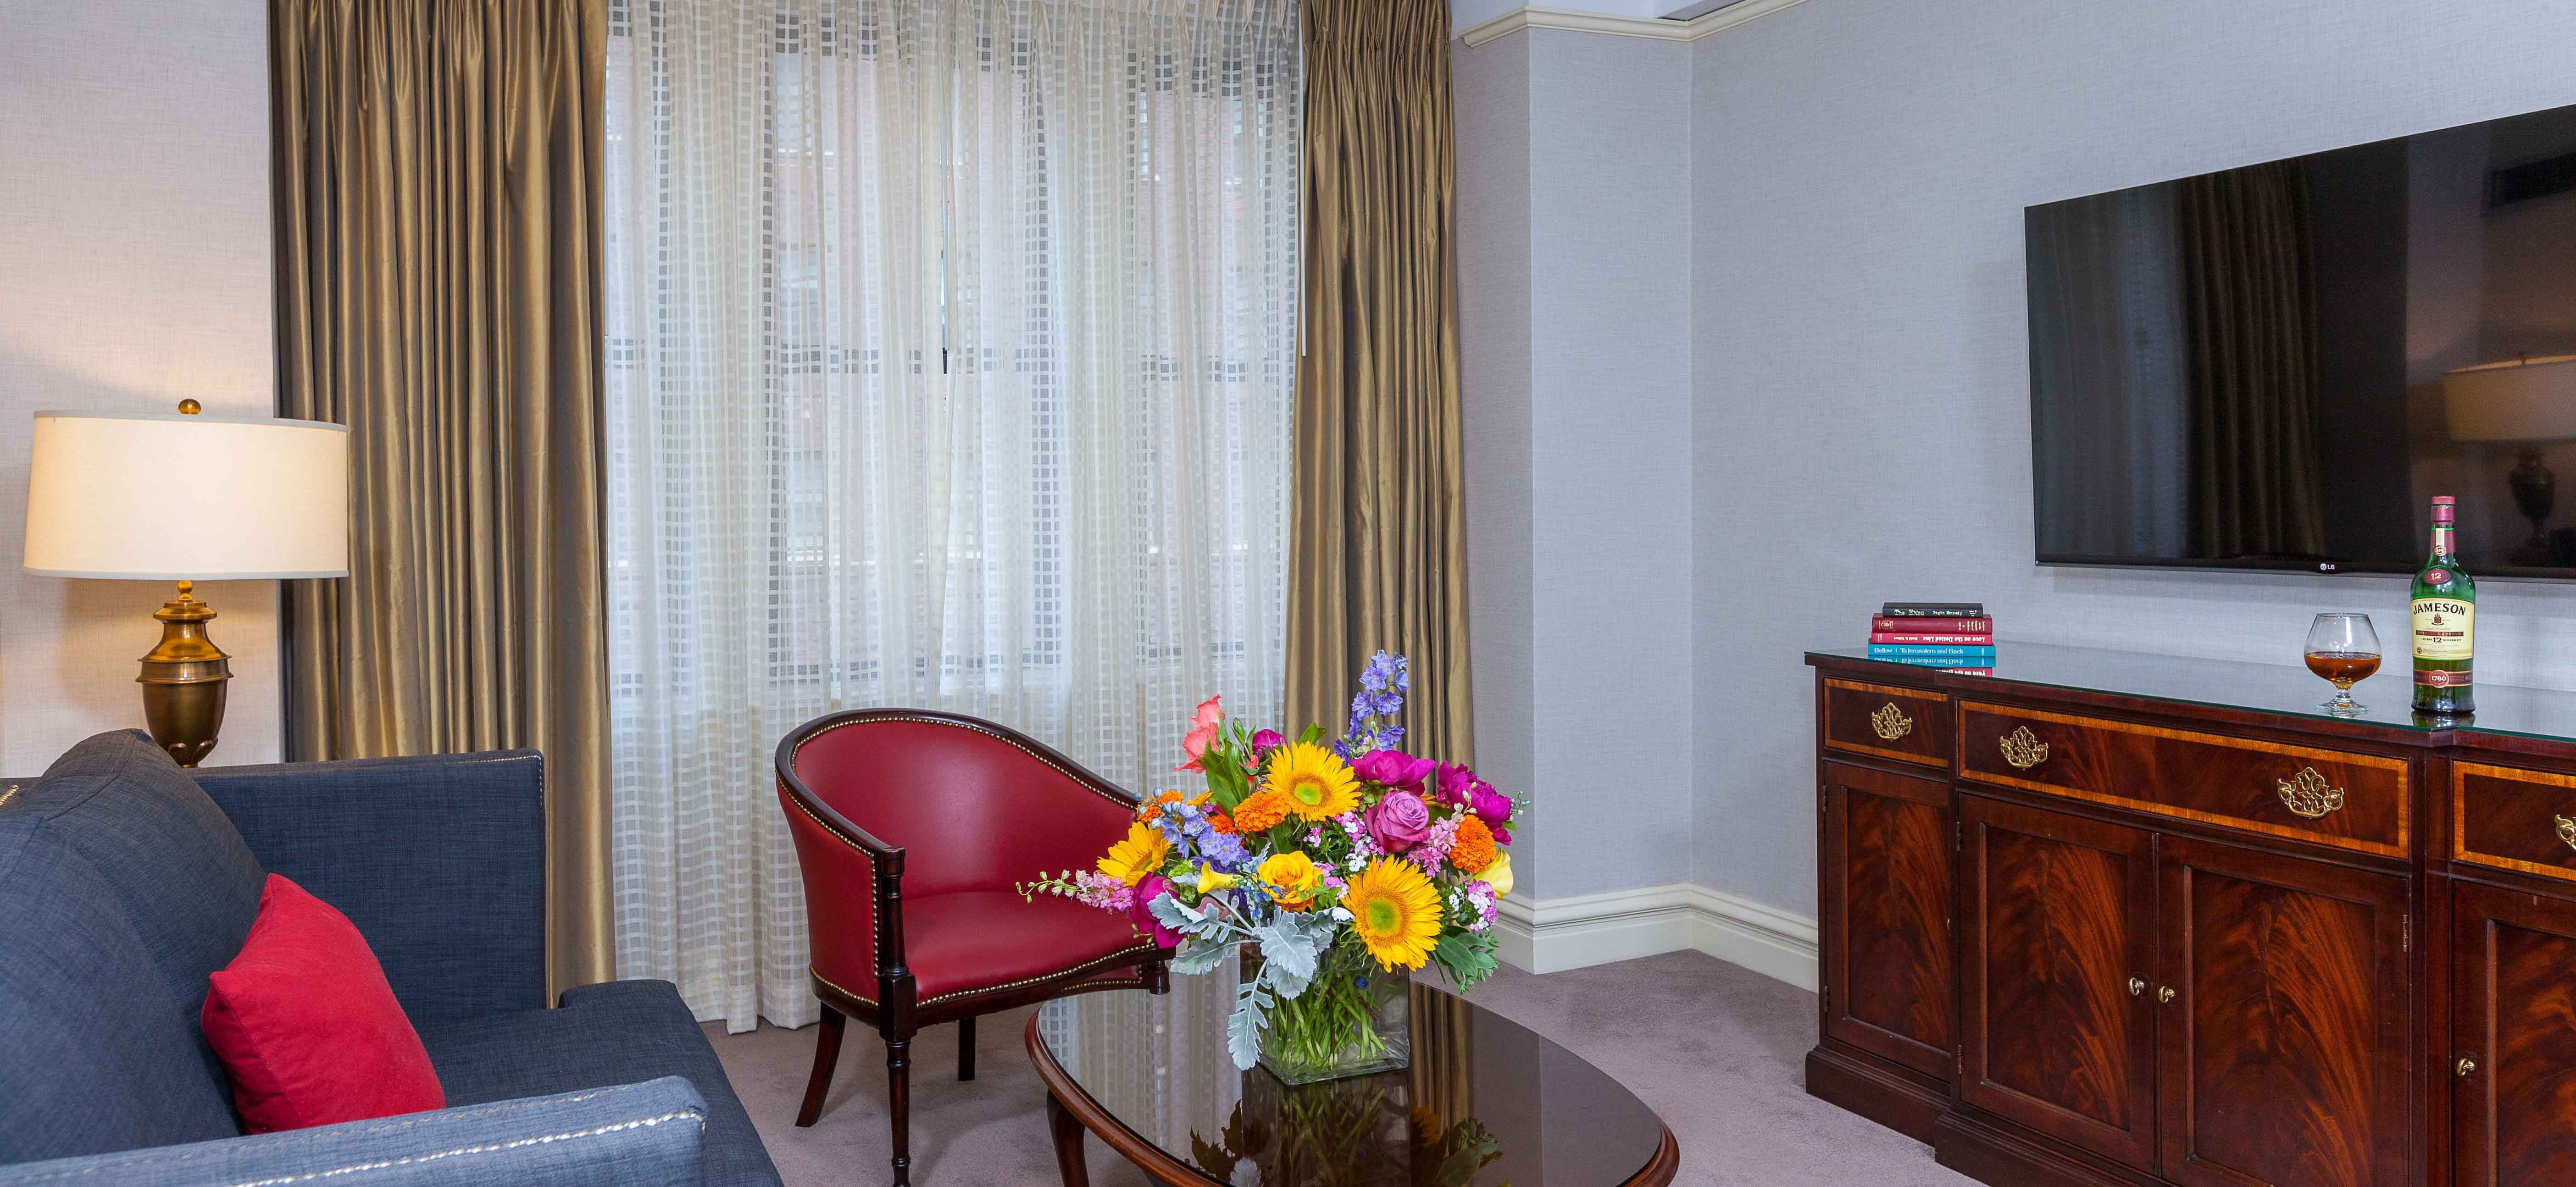 Lone red studded armchair in front of white and gold curtains with a floral bouquet on an oval coffee table.